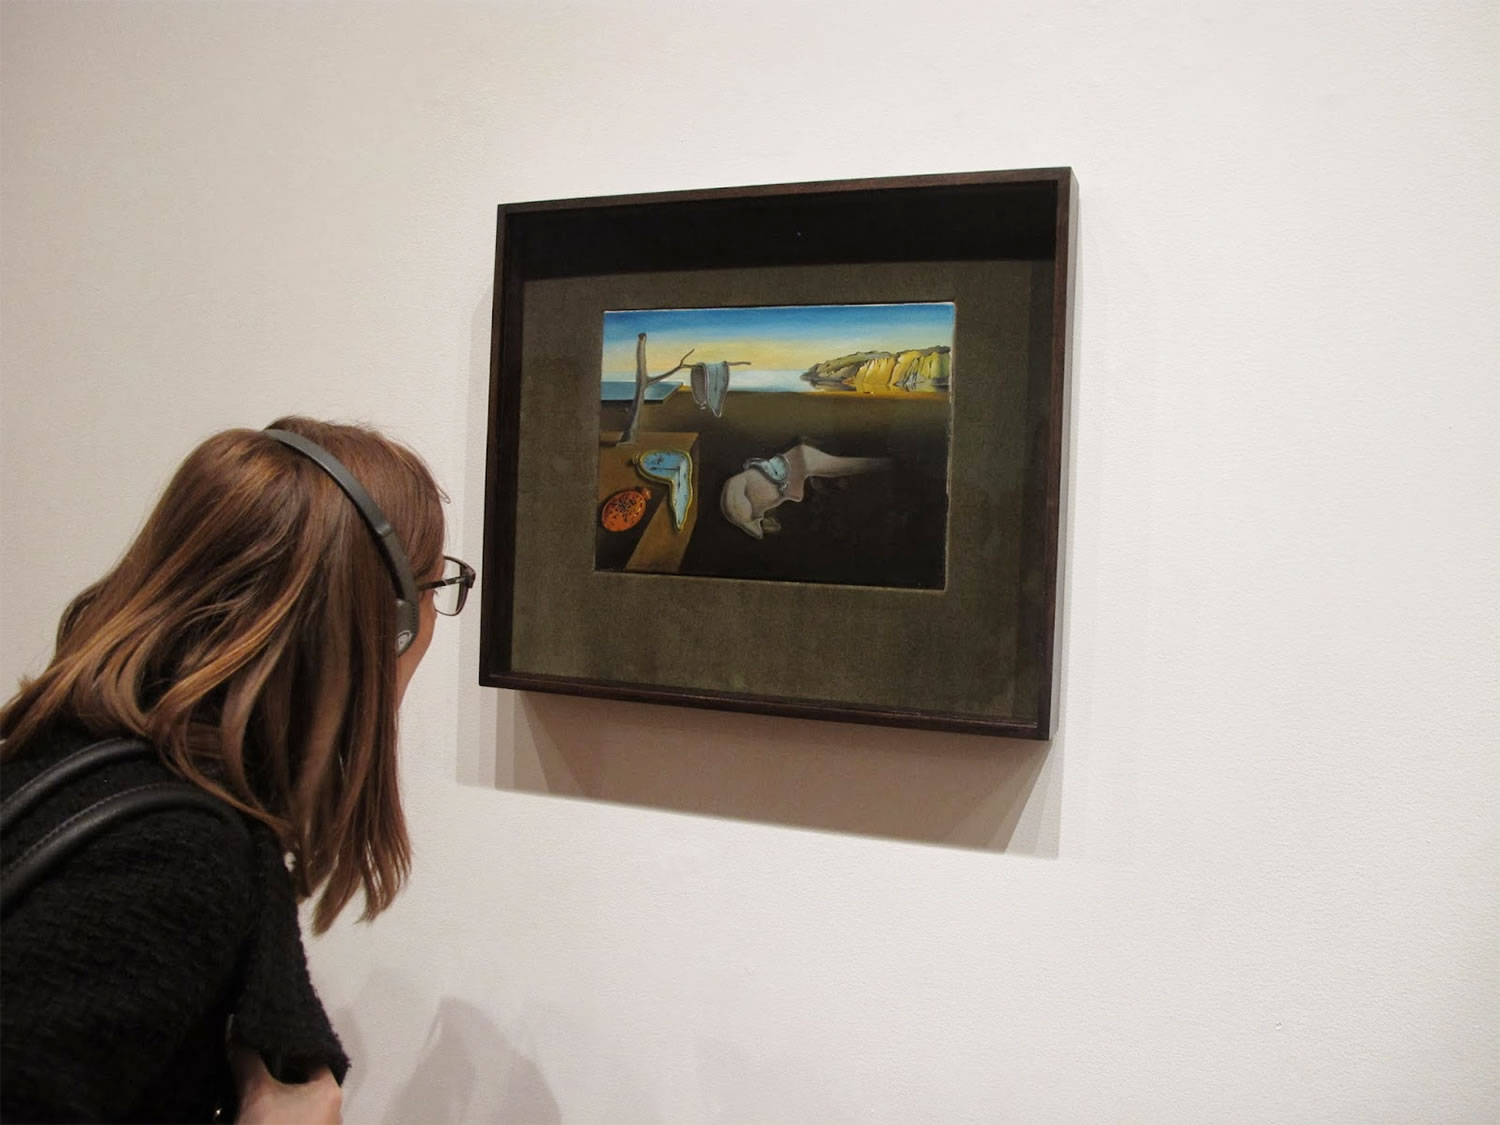 Picture of The Persistence of Memory hanging on museum wall. Photo © Christina Whiting